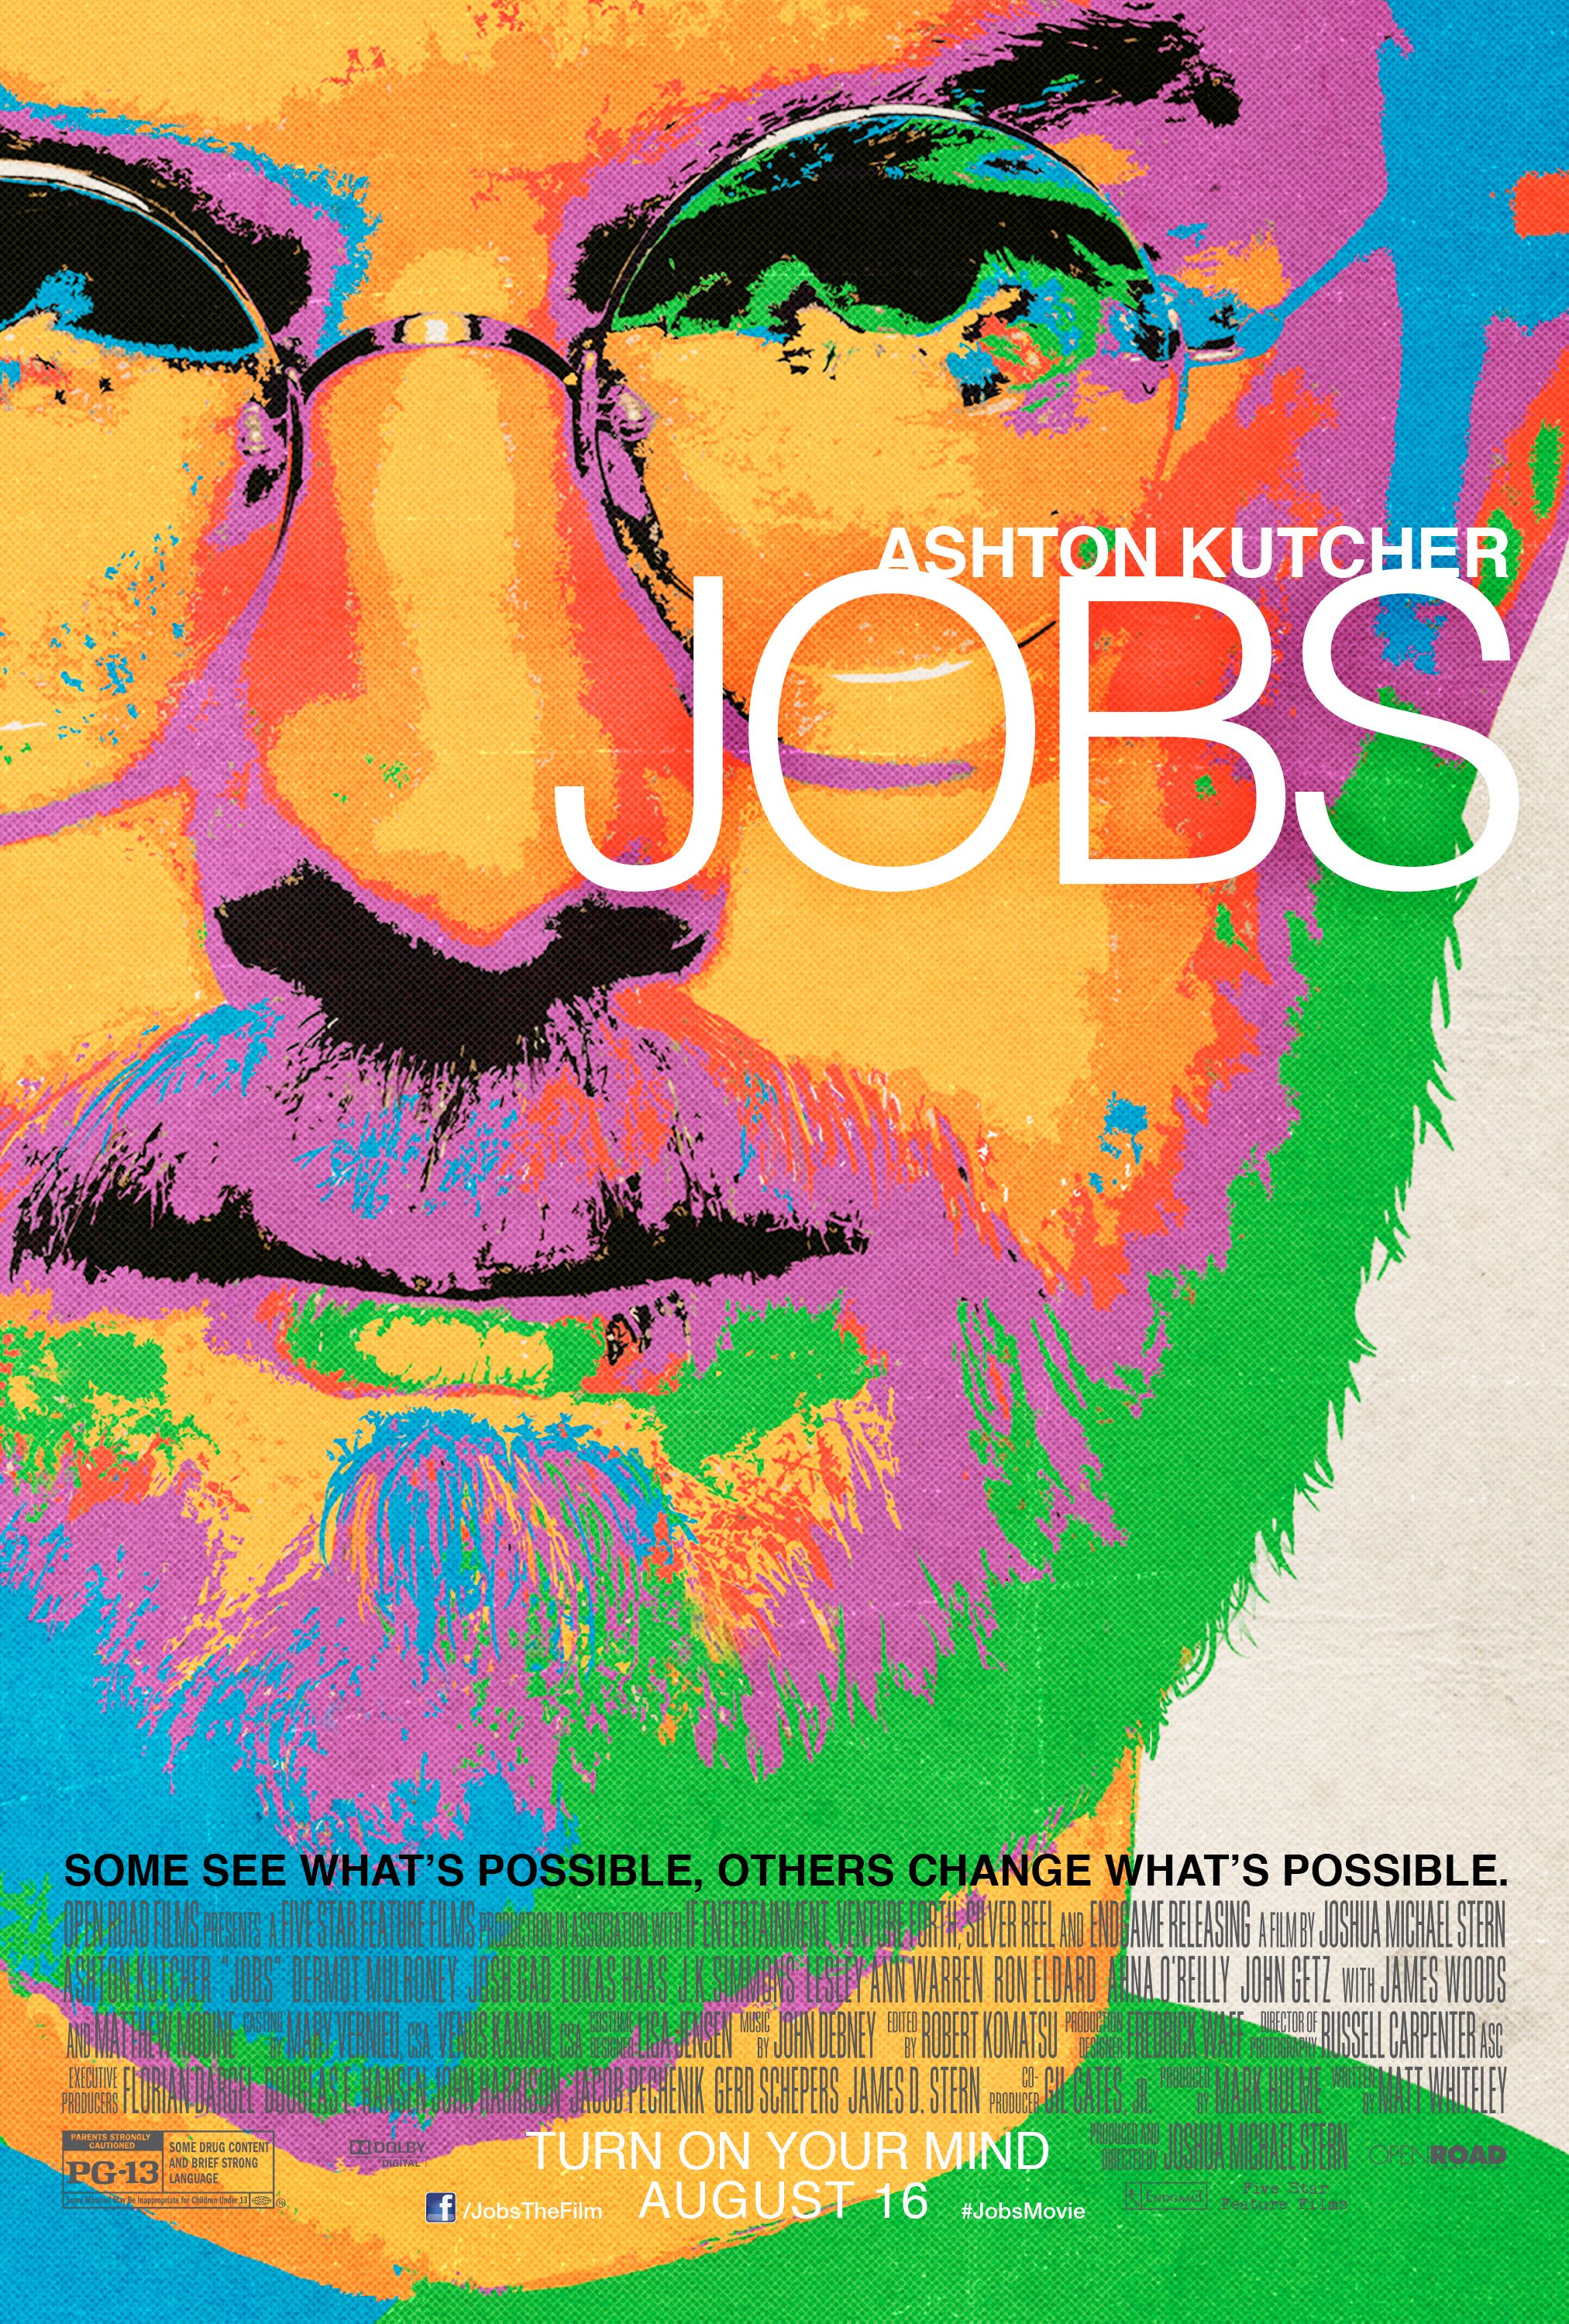 jobs interview joshua michael stern talks casting ashton kutcher steve jobs being who he is how tough was it to get the financing together to get this film made or was it easy because of the subject